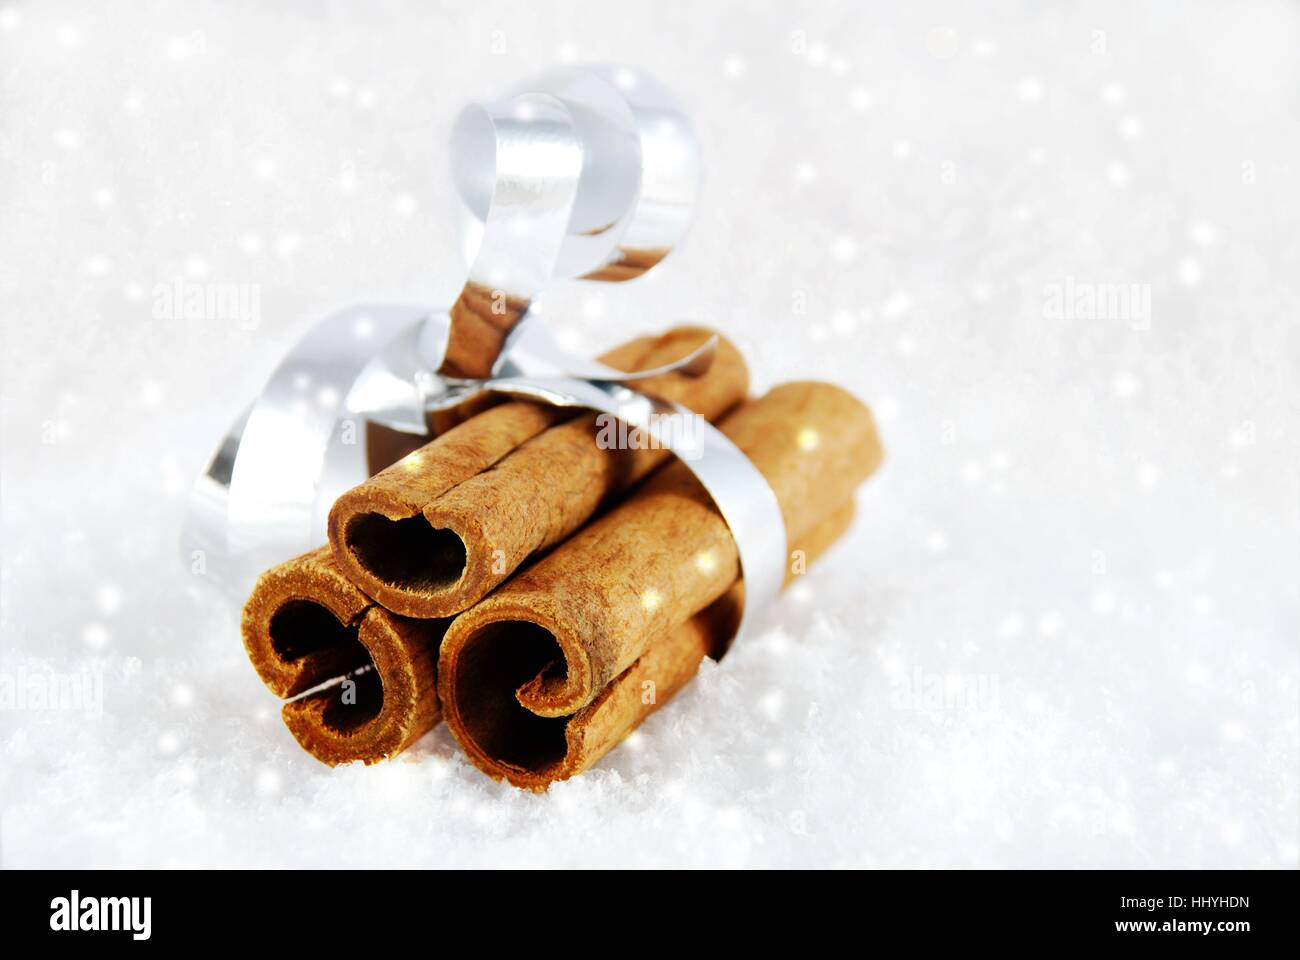 cinnamon sticks as a present in the snow with white snowflakes - Stock Image